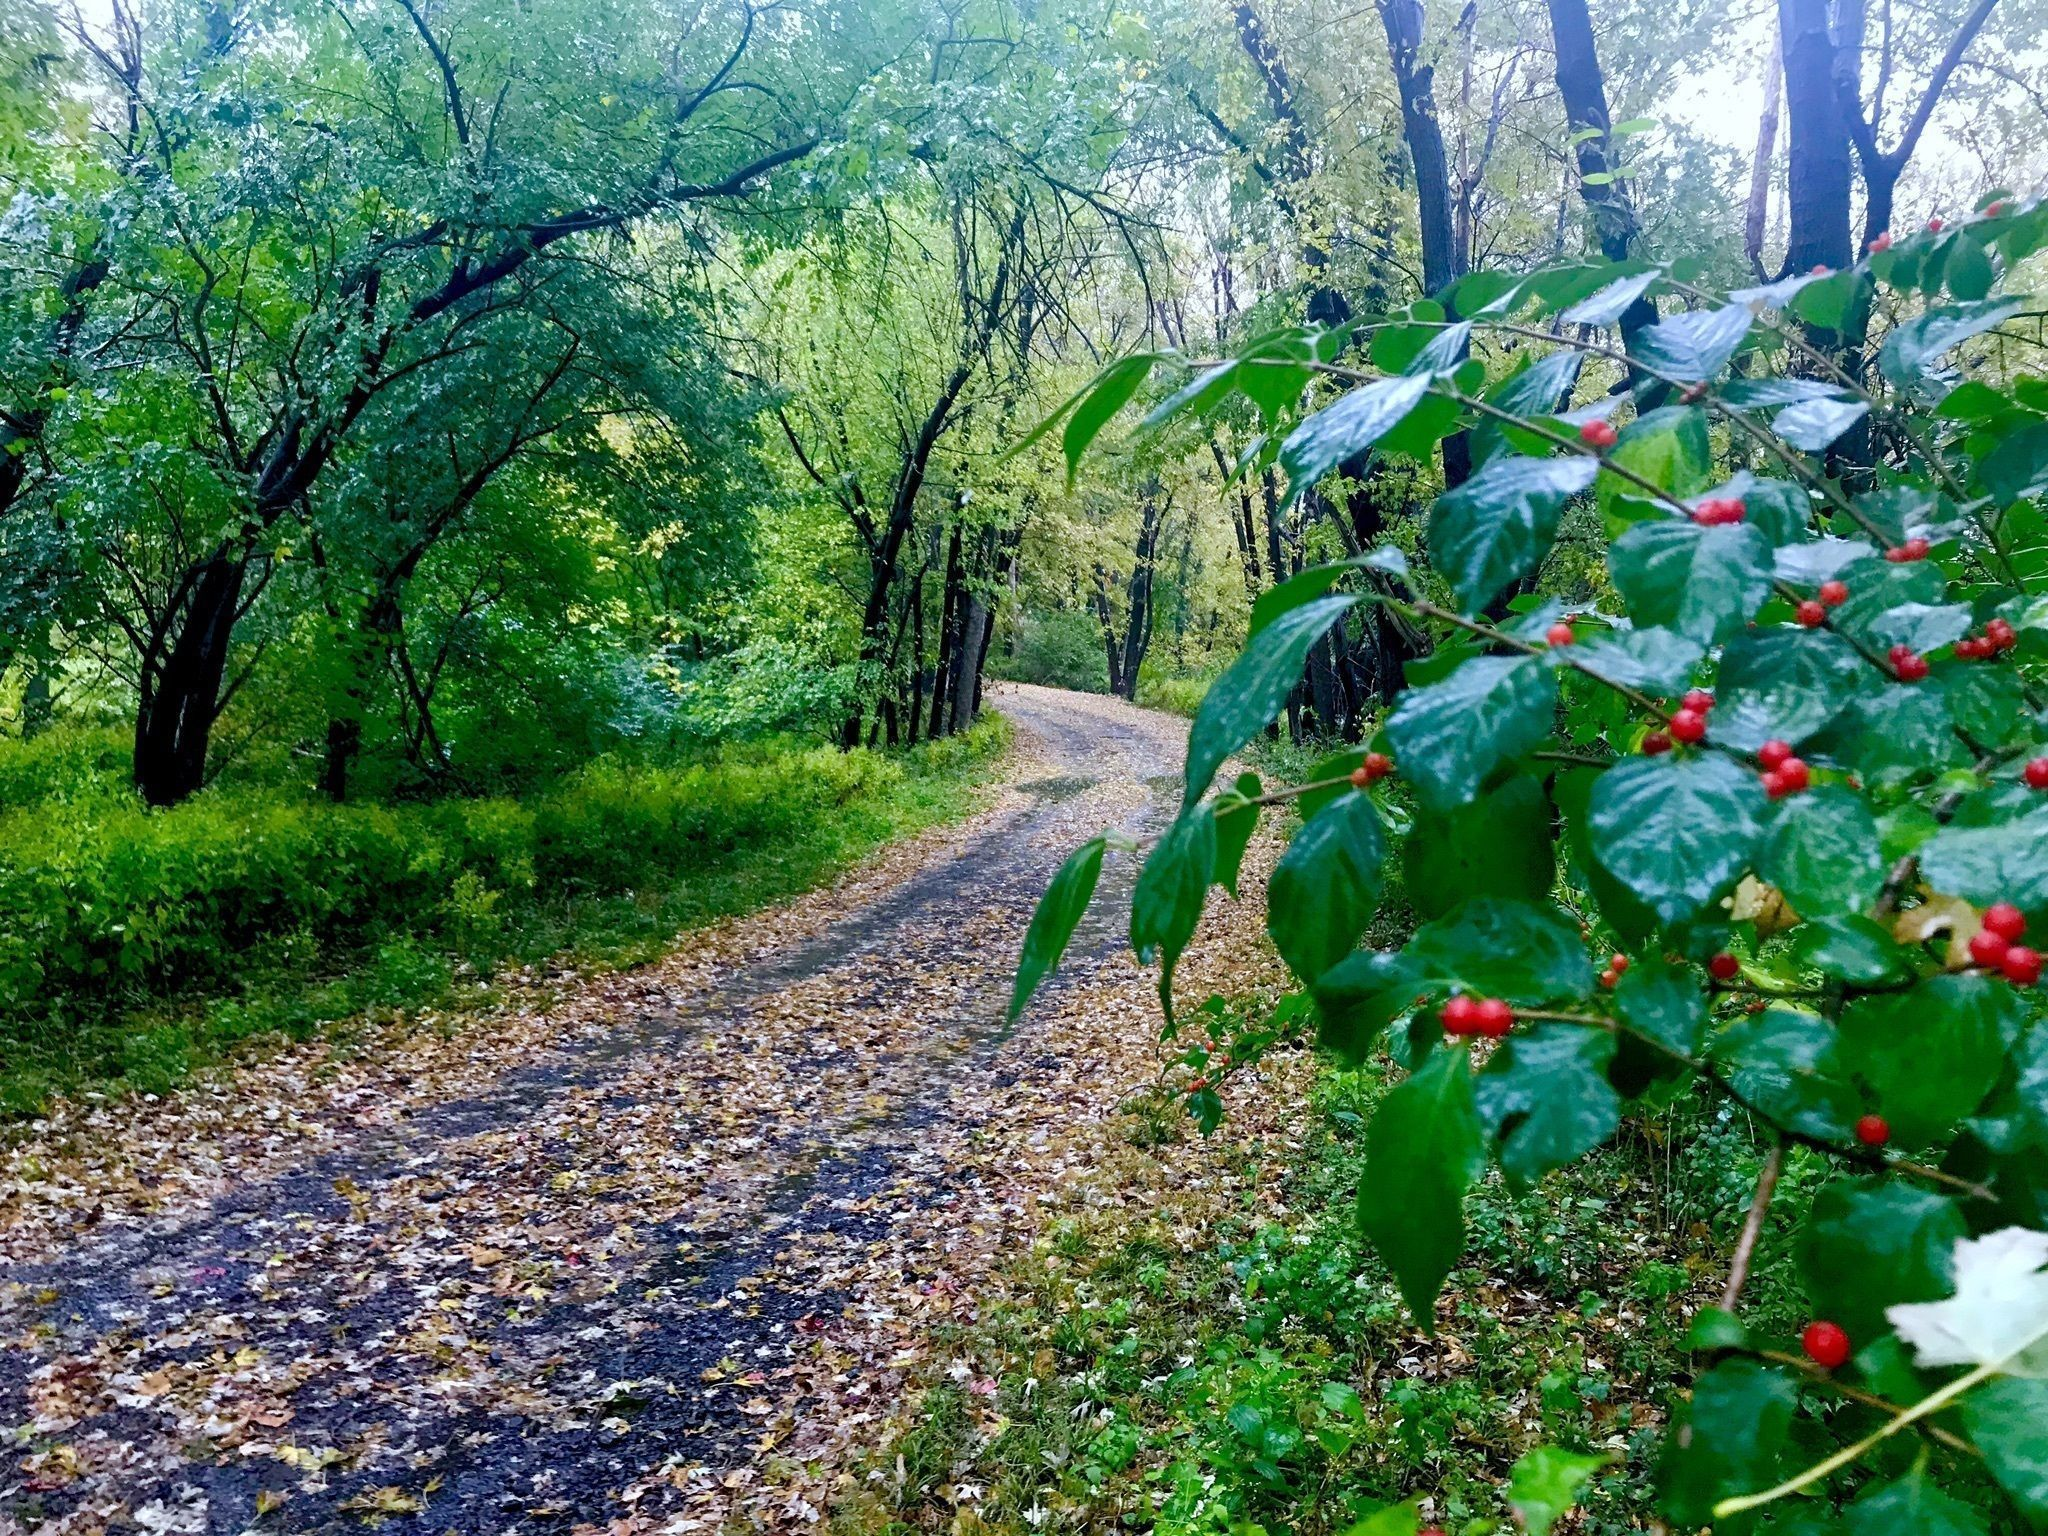 Getting outdoors: The 3,000 mile, 15-state biking greenway